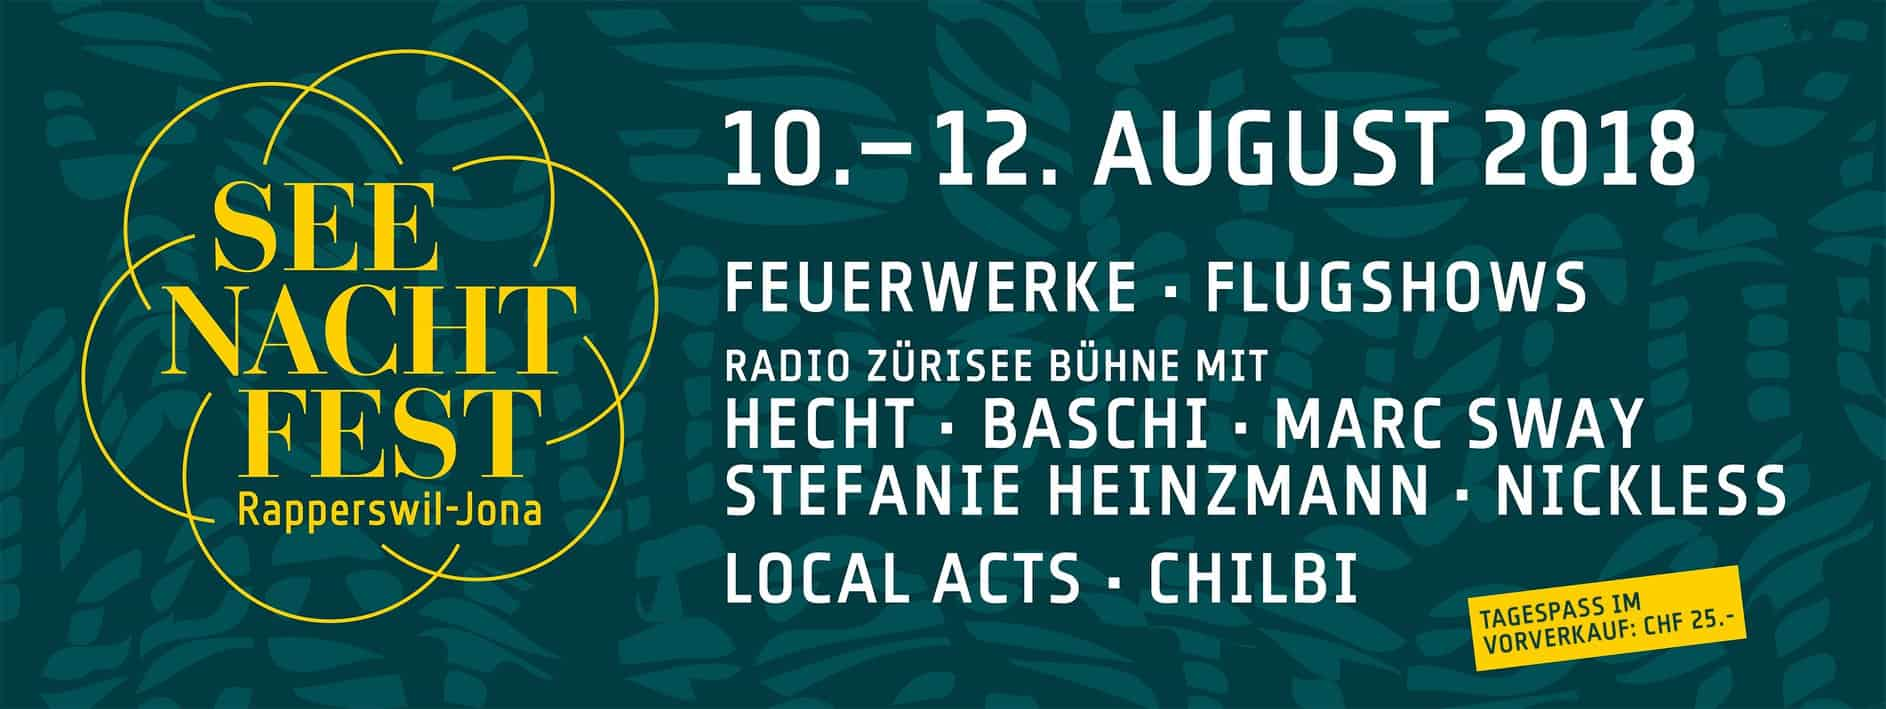 What's On in Zurich Mid August 2018 Onwards